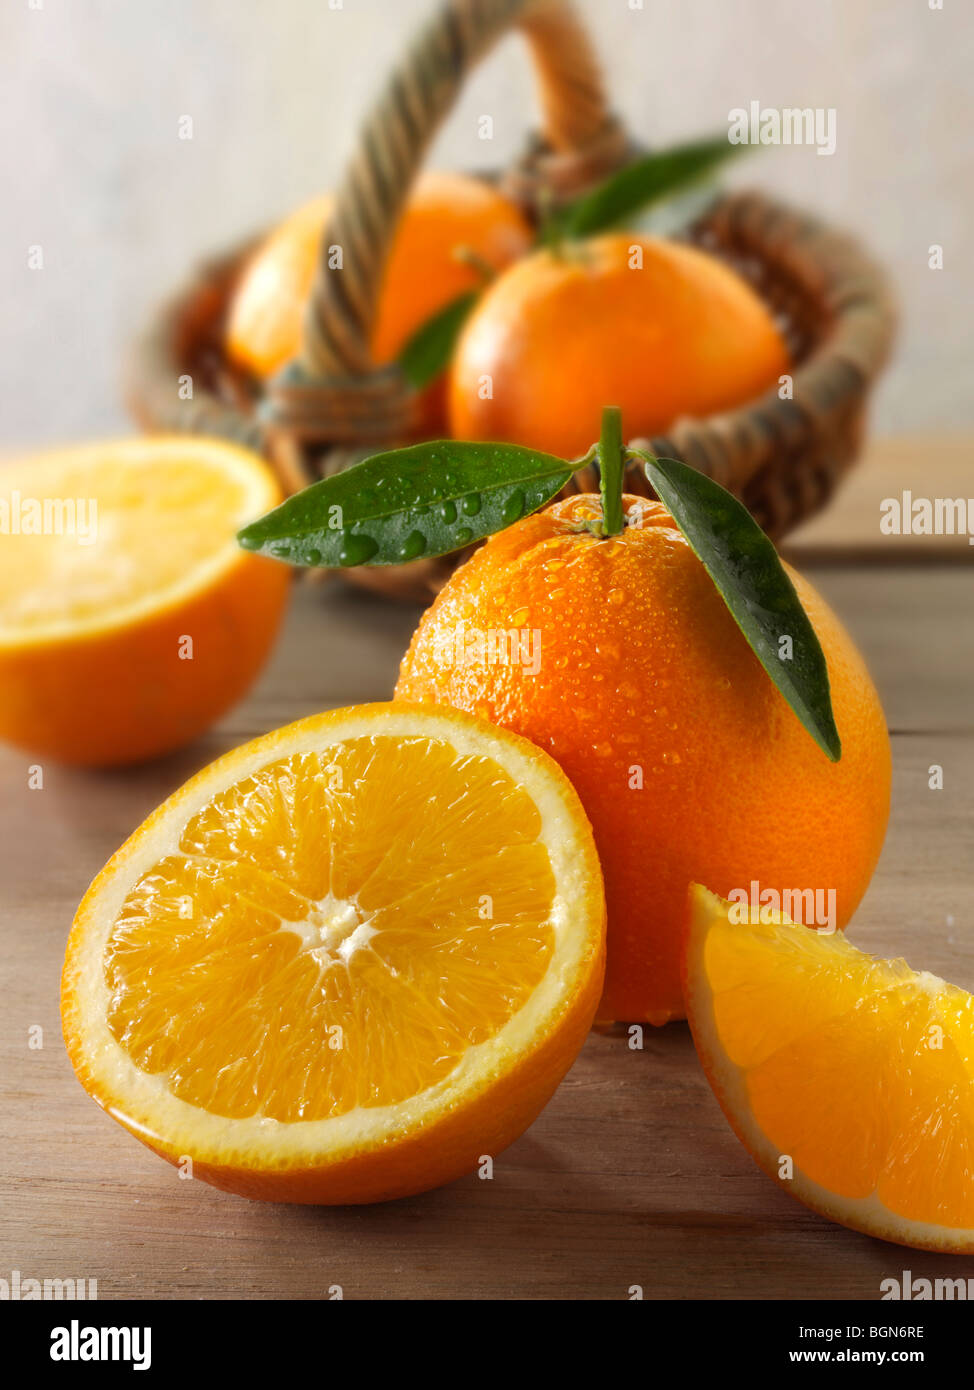 Fresh oranges whole and cut halves with leaves in a kitchen setting - Stock Image